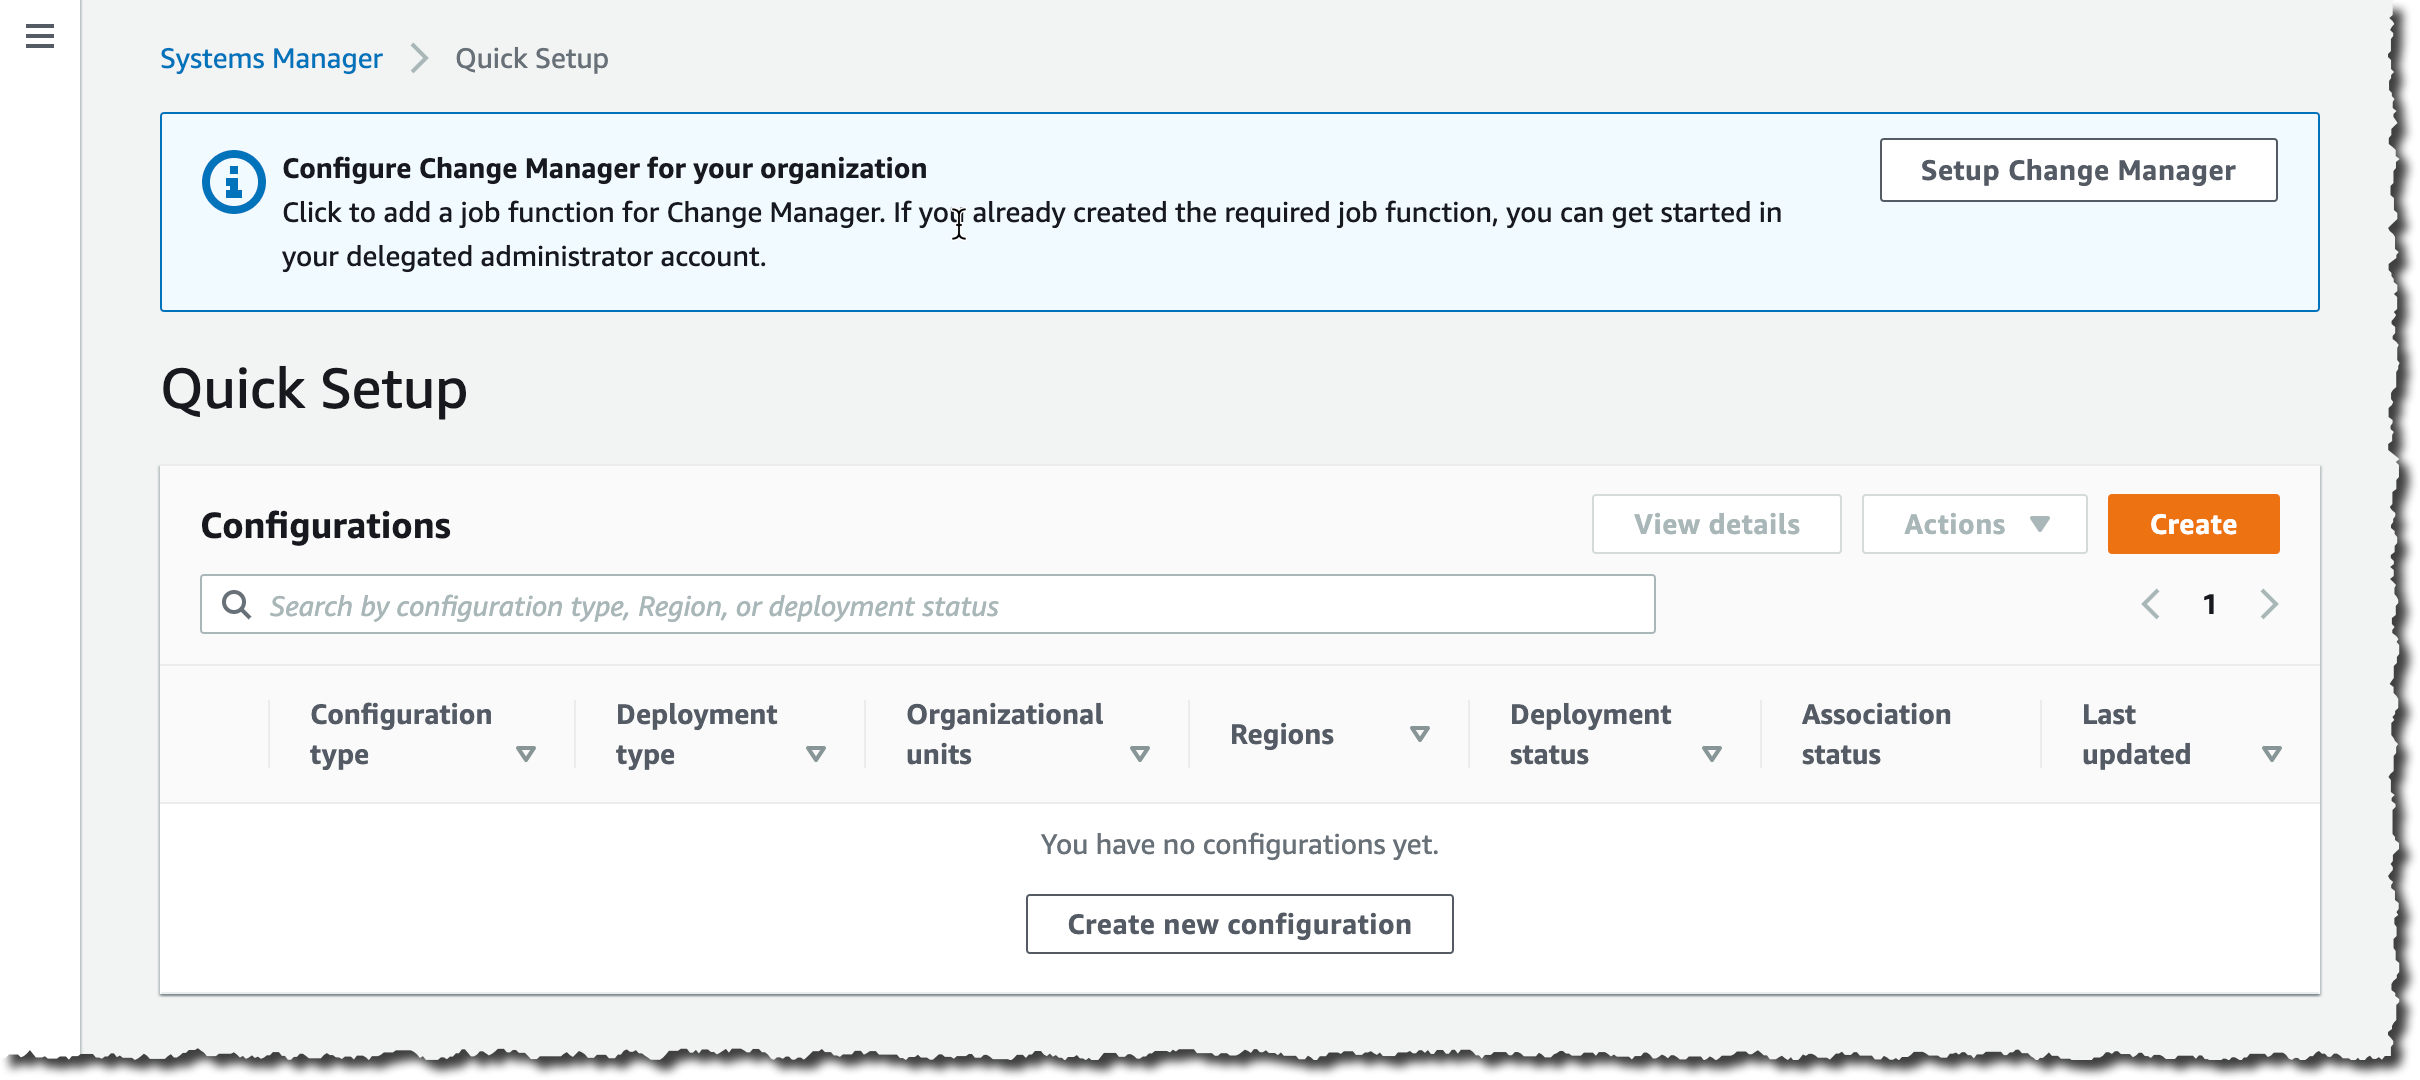 Change Manager Quick Setup